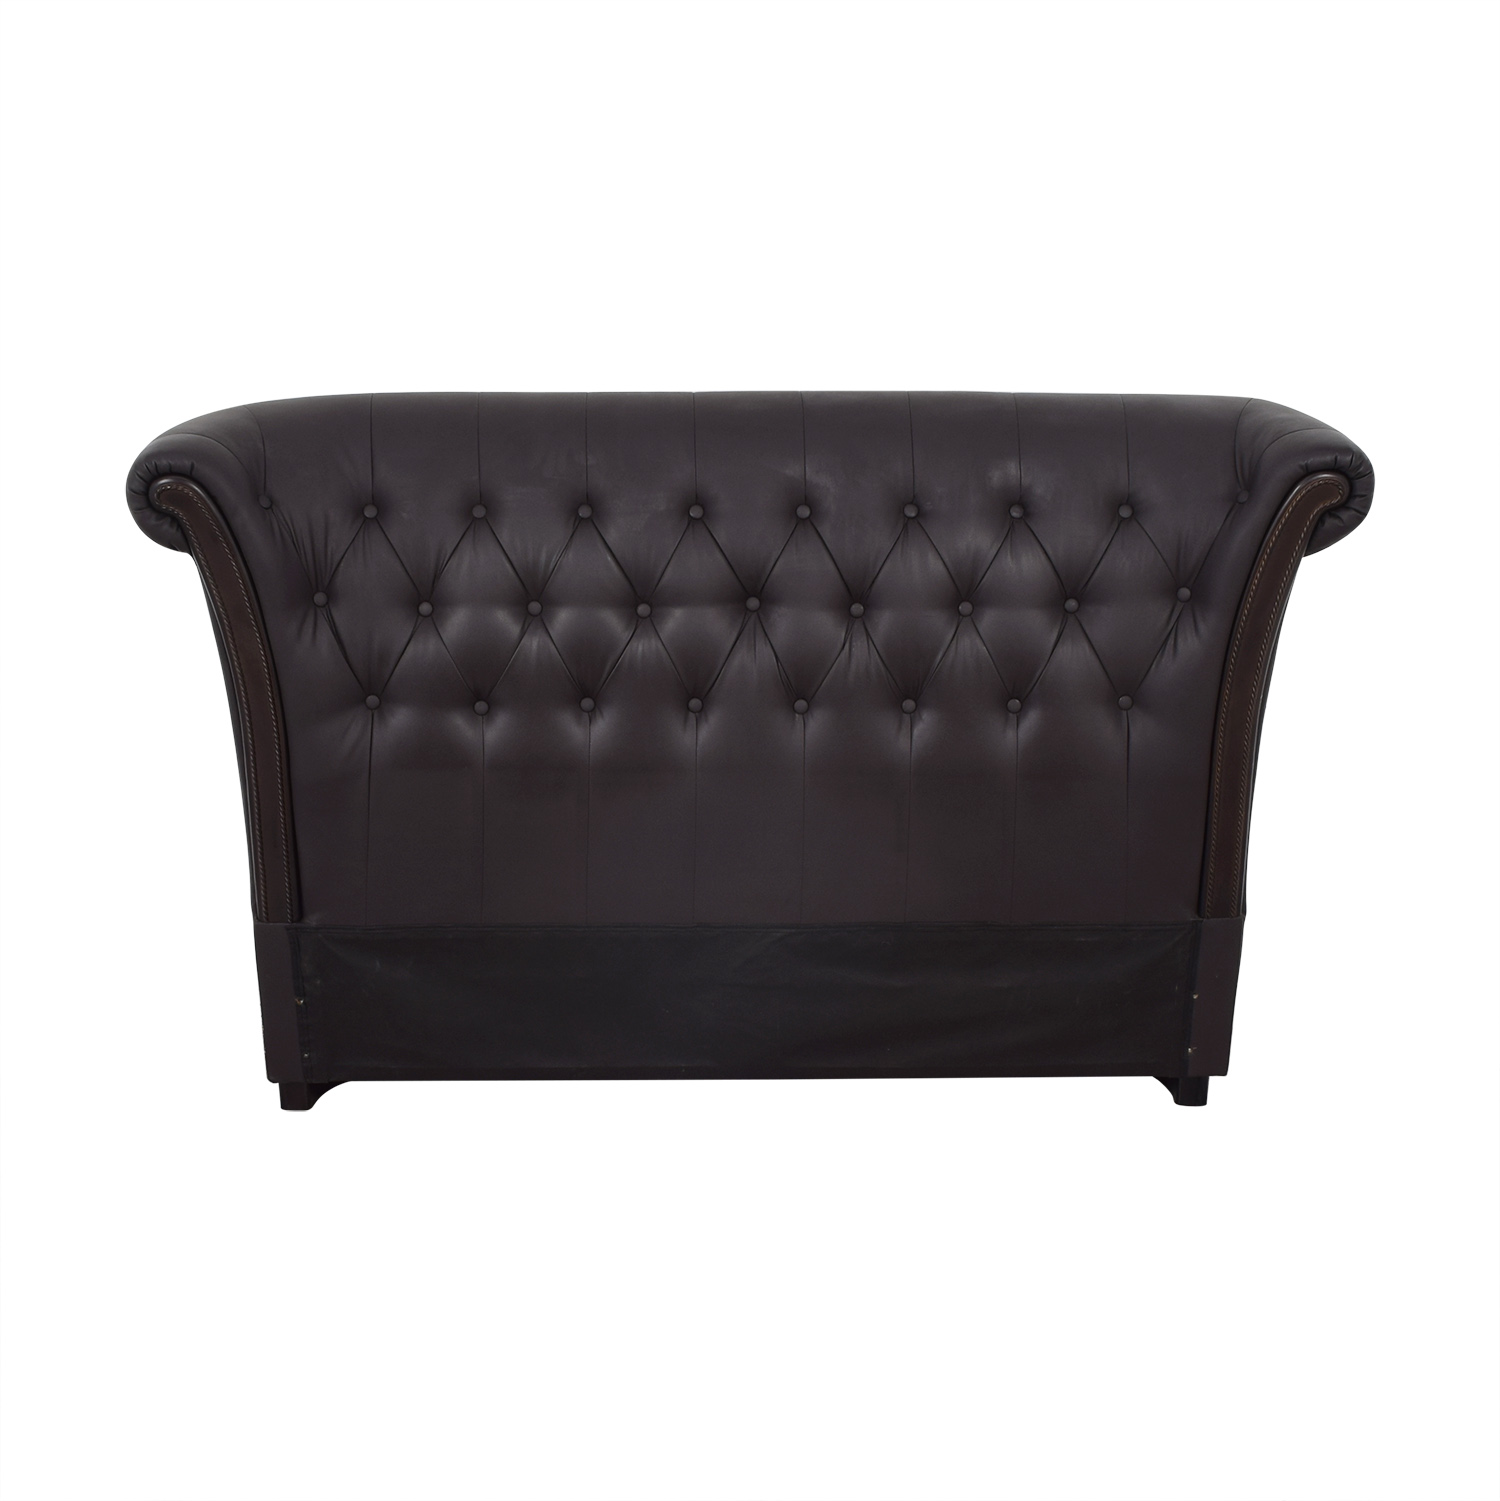 Tufted Leather Queen Headboard for sale